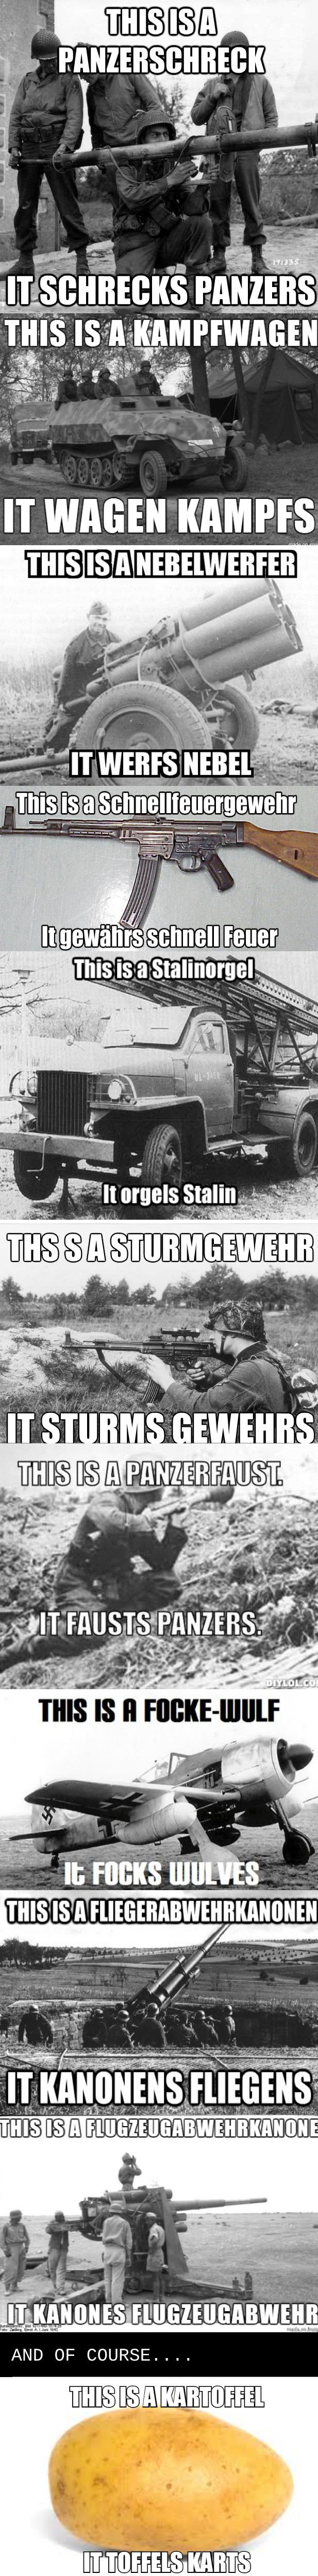 german names for things and what they mean, military equipment, meme